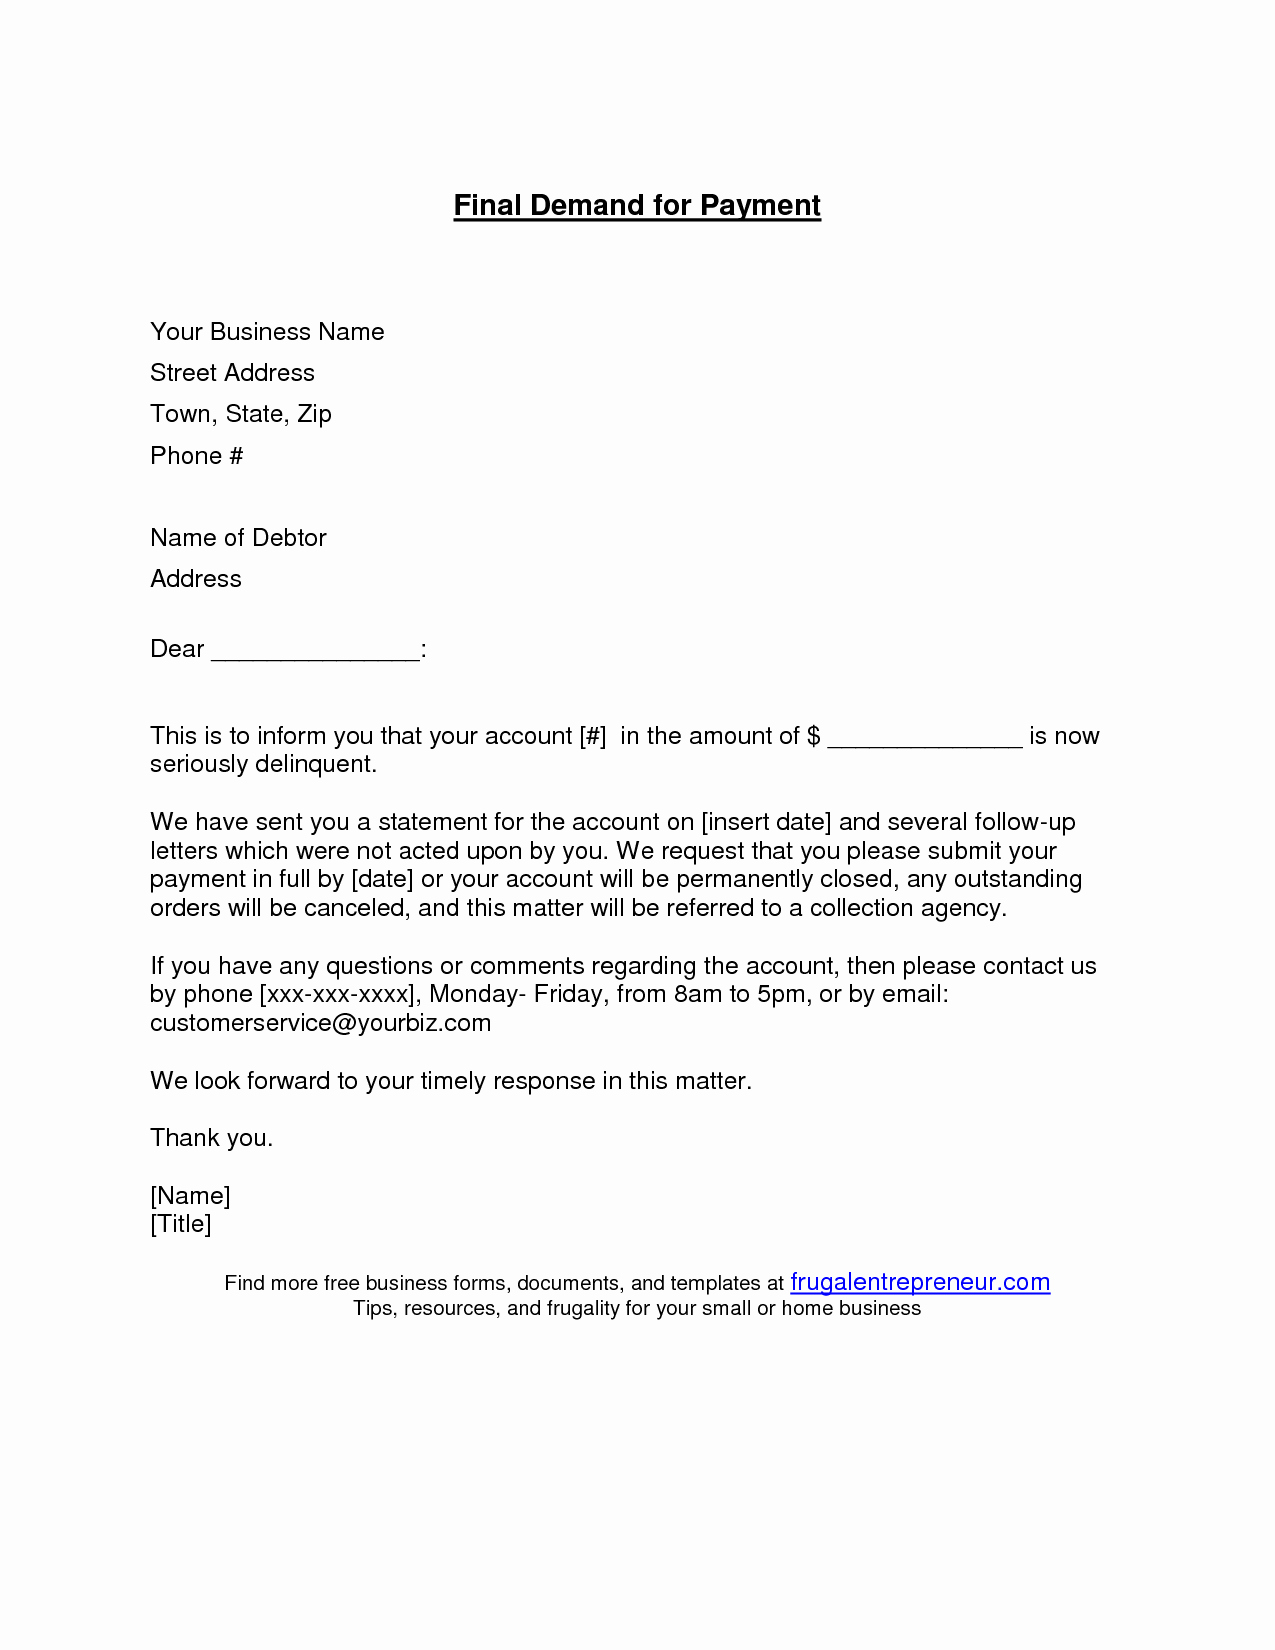 Sample Demand for Payment Letter New Best S Of Outstanding Payment Letter Sample Overdue